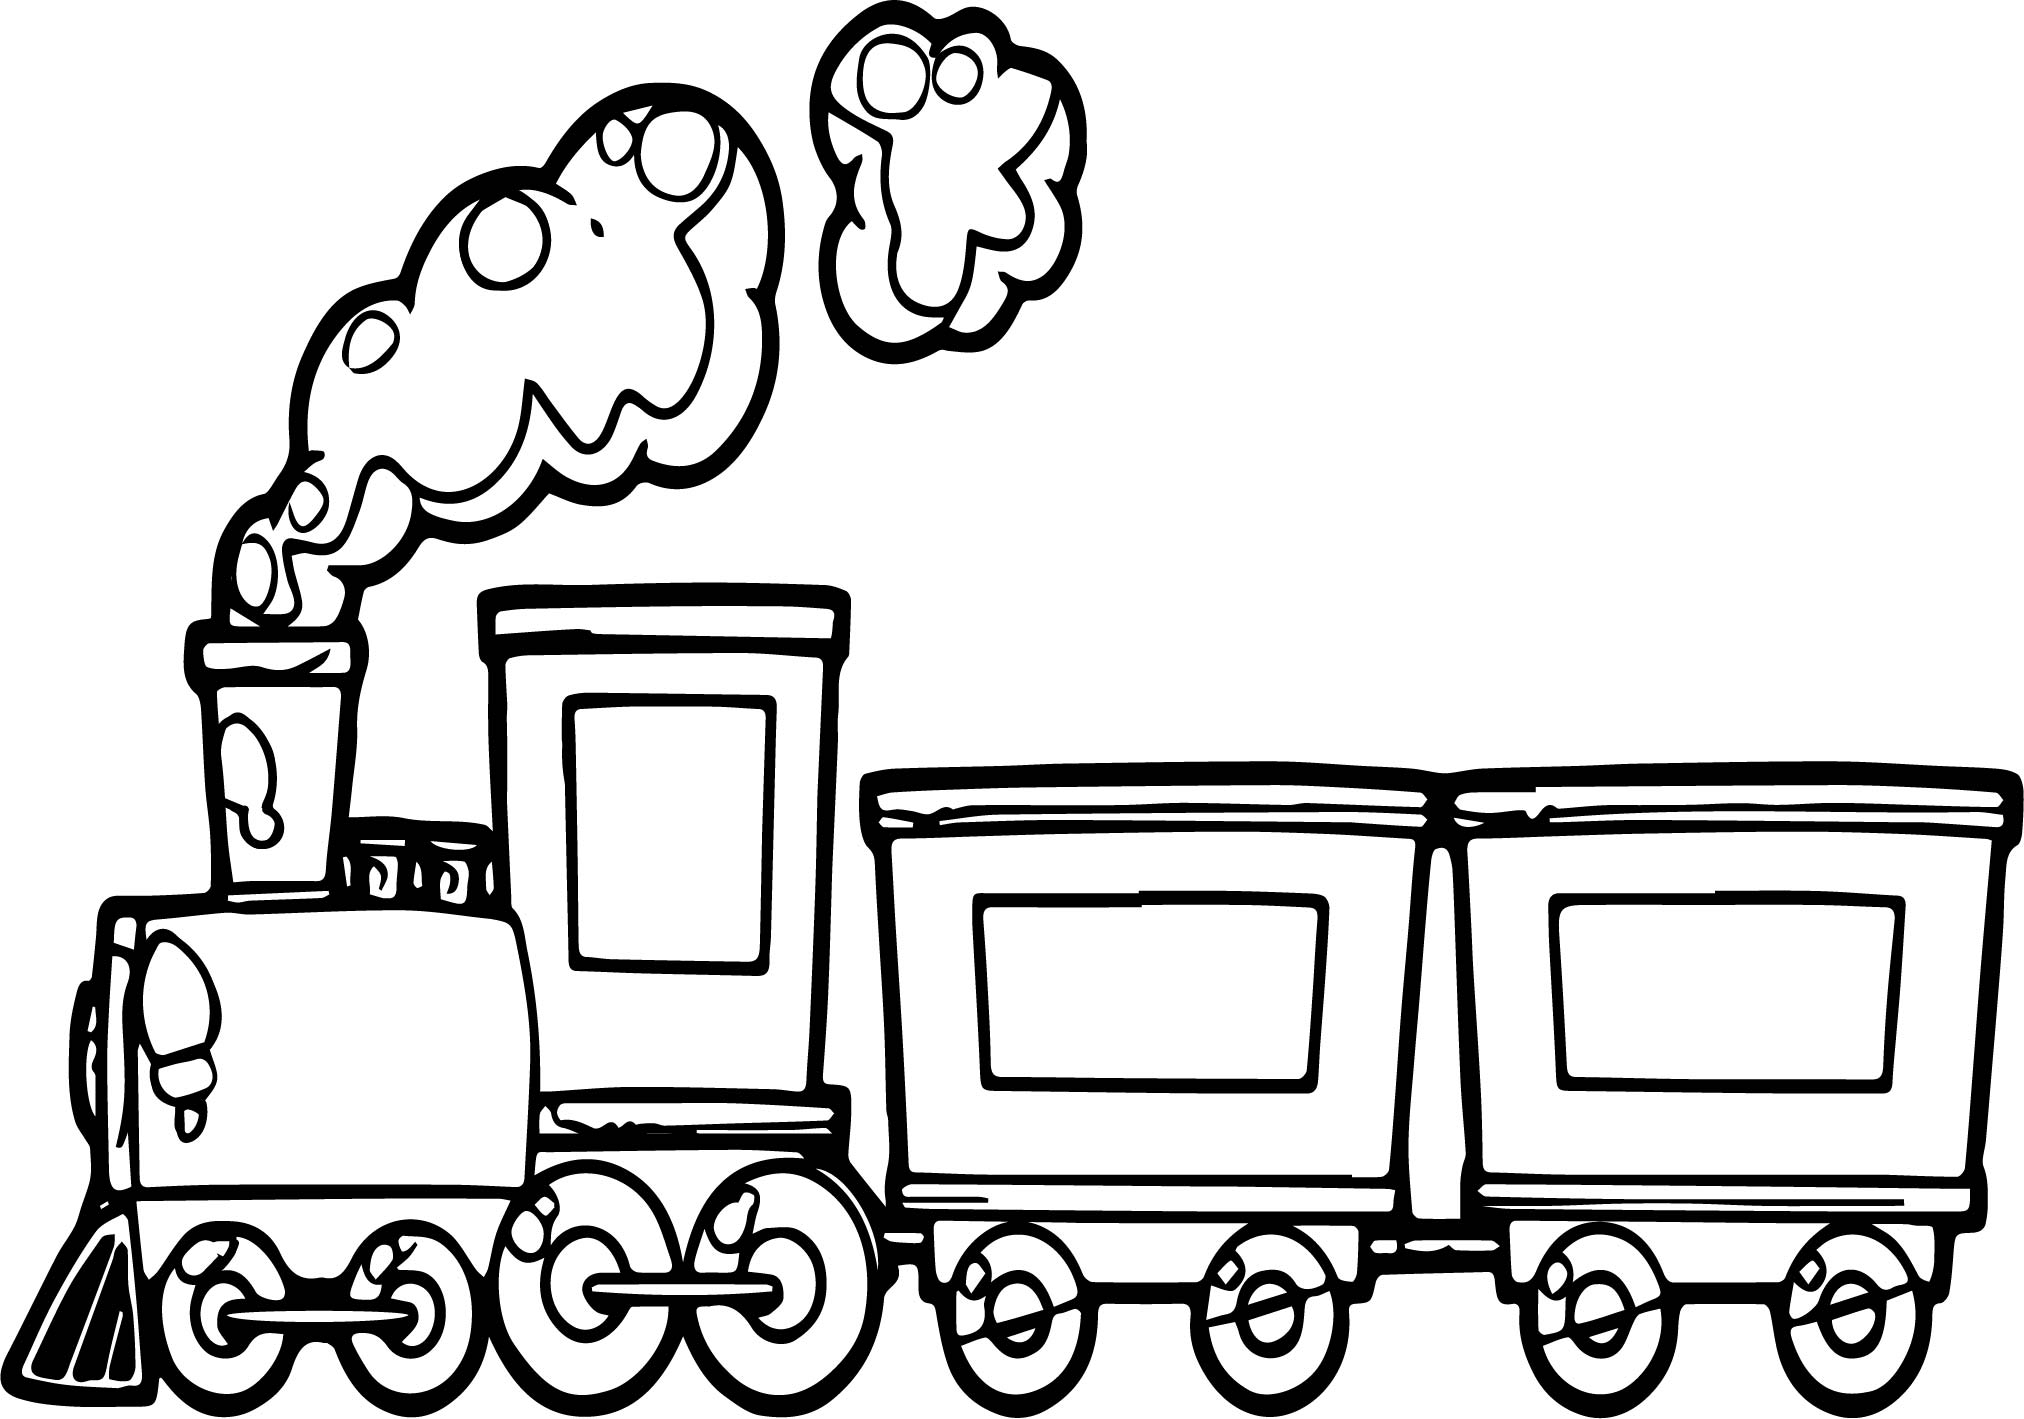 Coloring Pages Trains : Funny cartoon train coloring page wecoloringpage